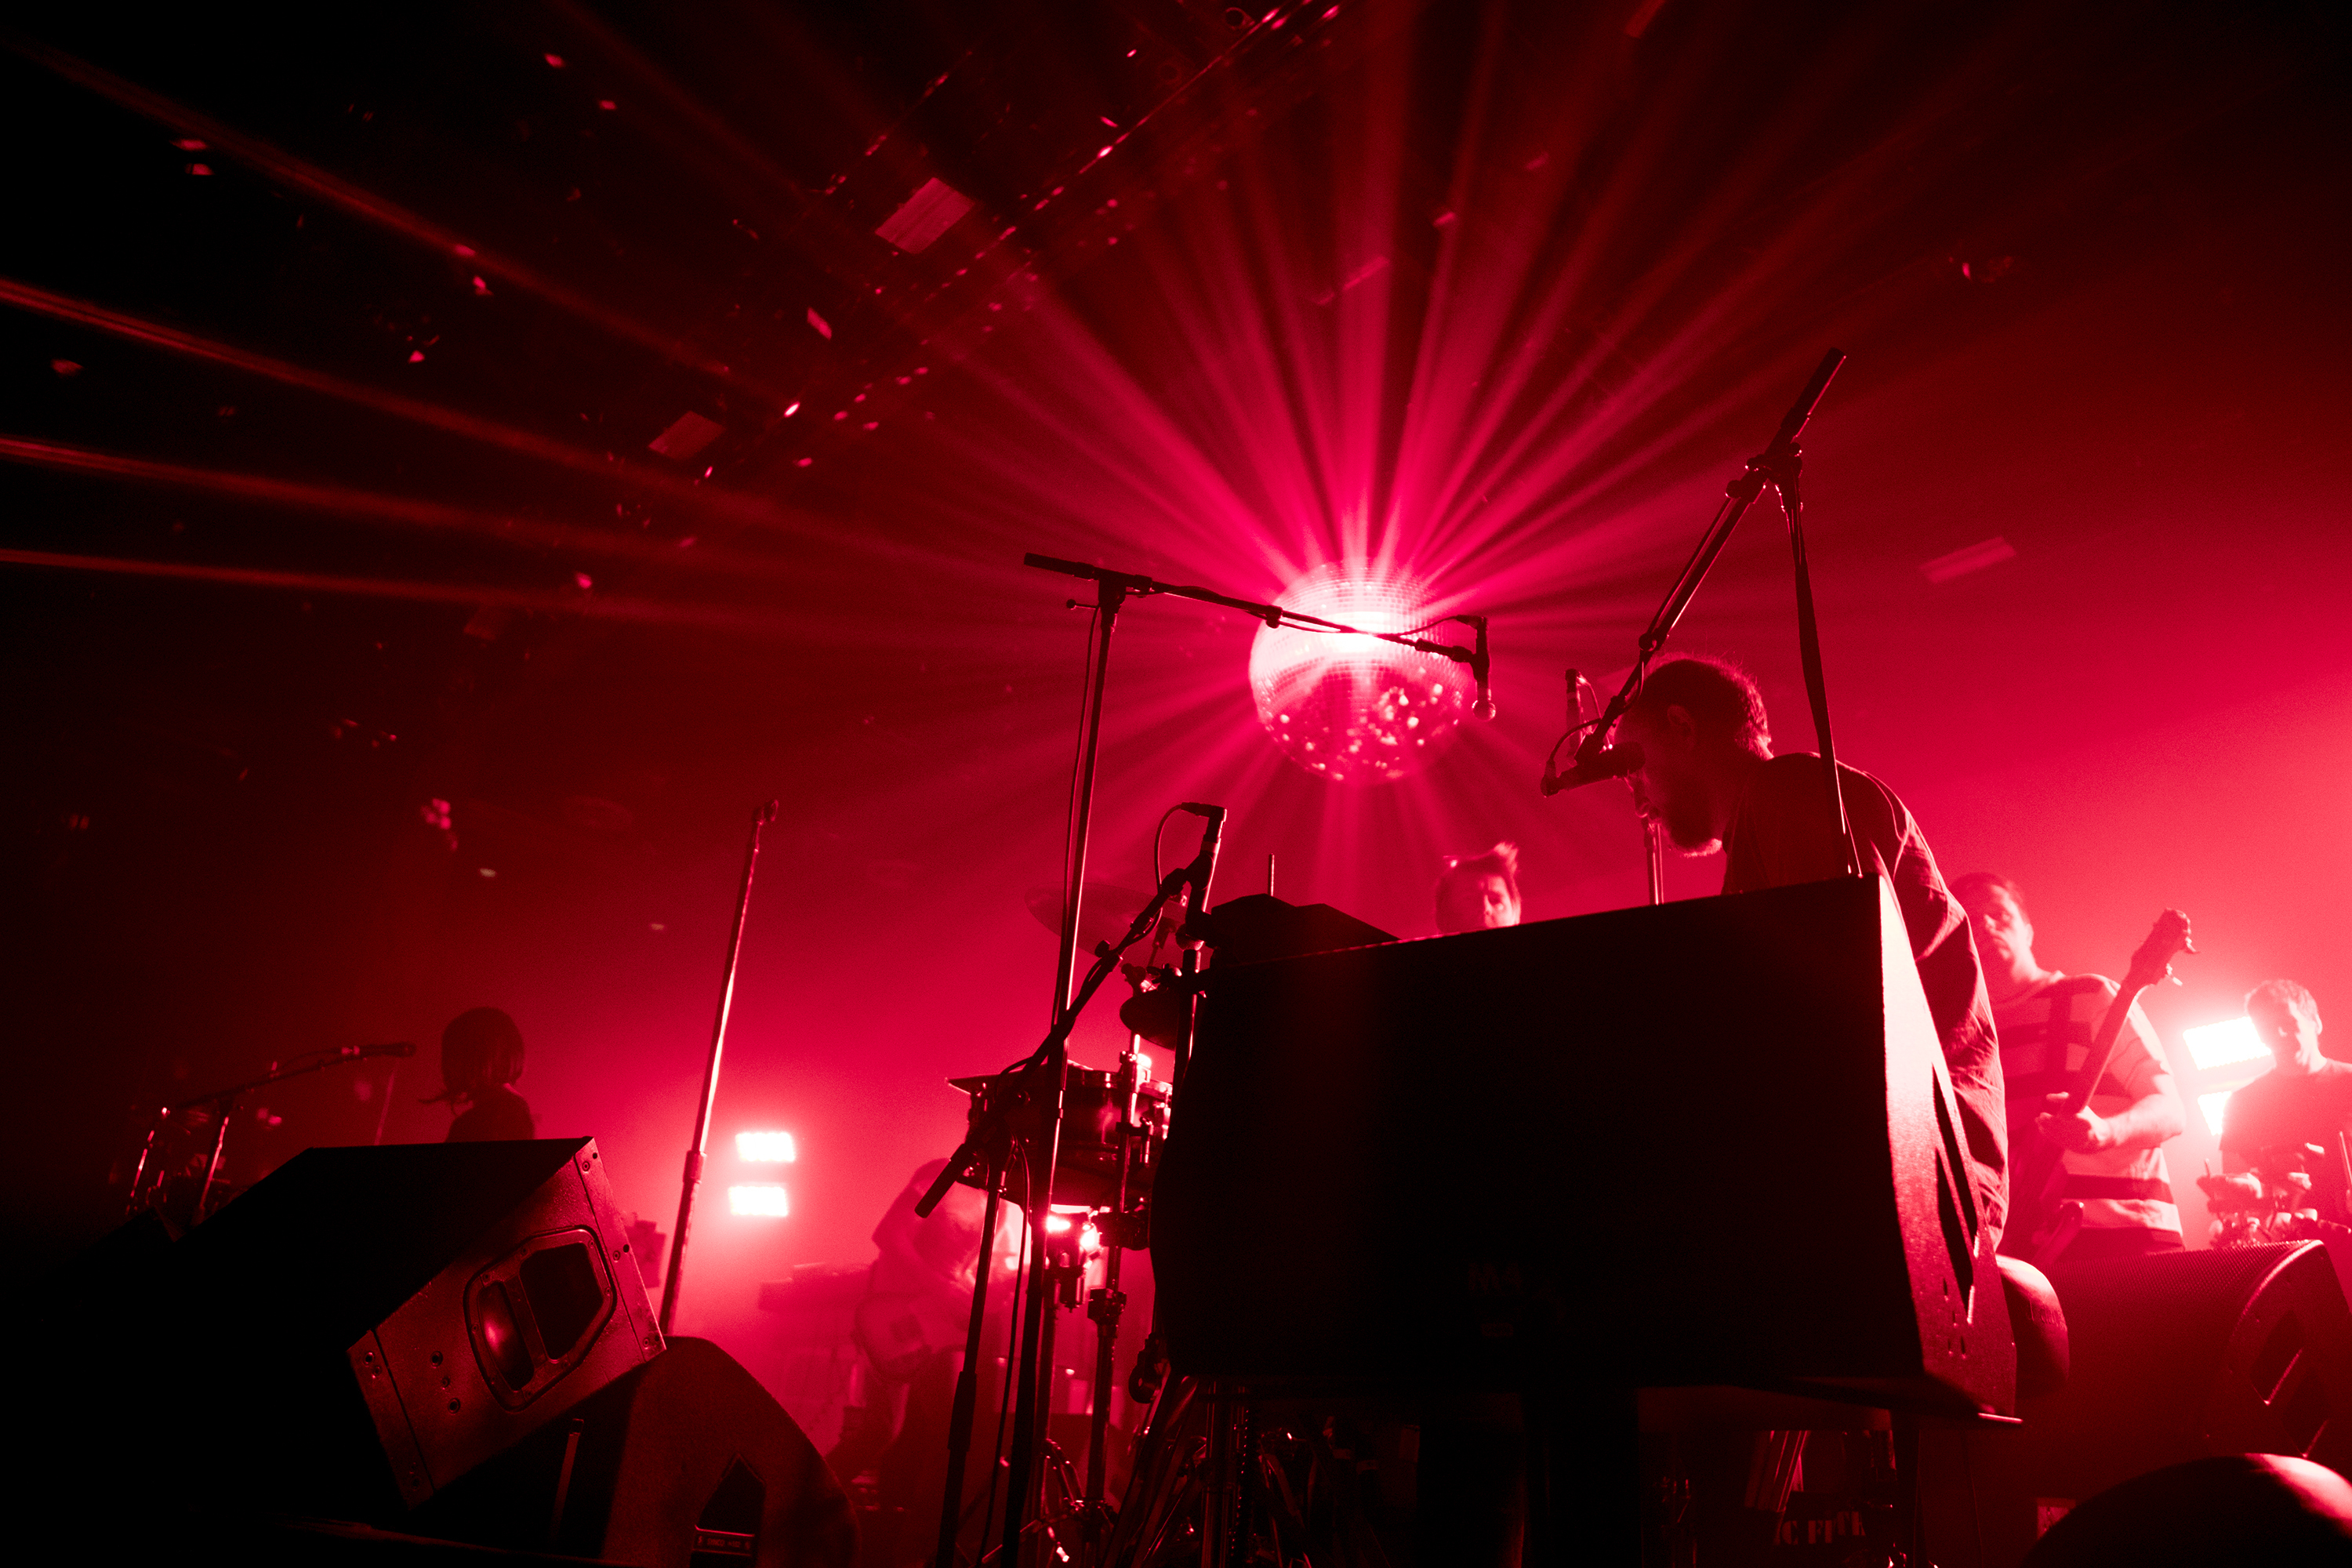 LCD Soundsystem is playing the first of three sold out shows at the Fillmore on Dec. 5, 2017. CHARLES FOX / Staff Photographer